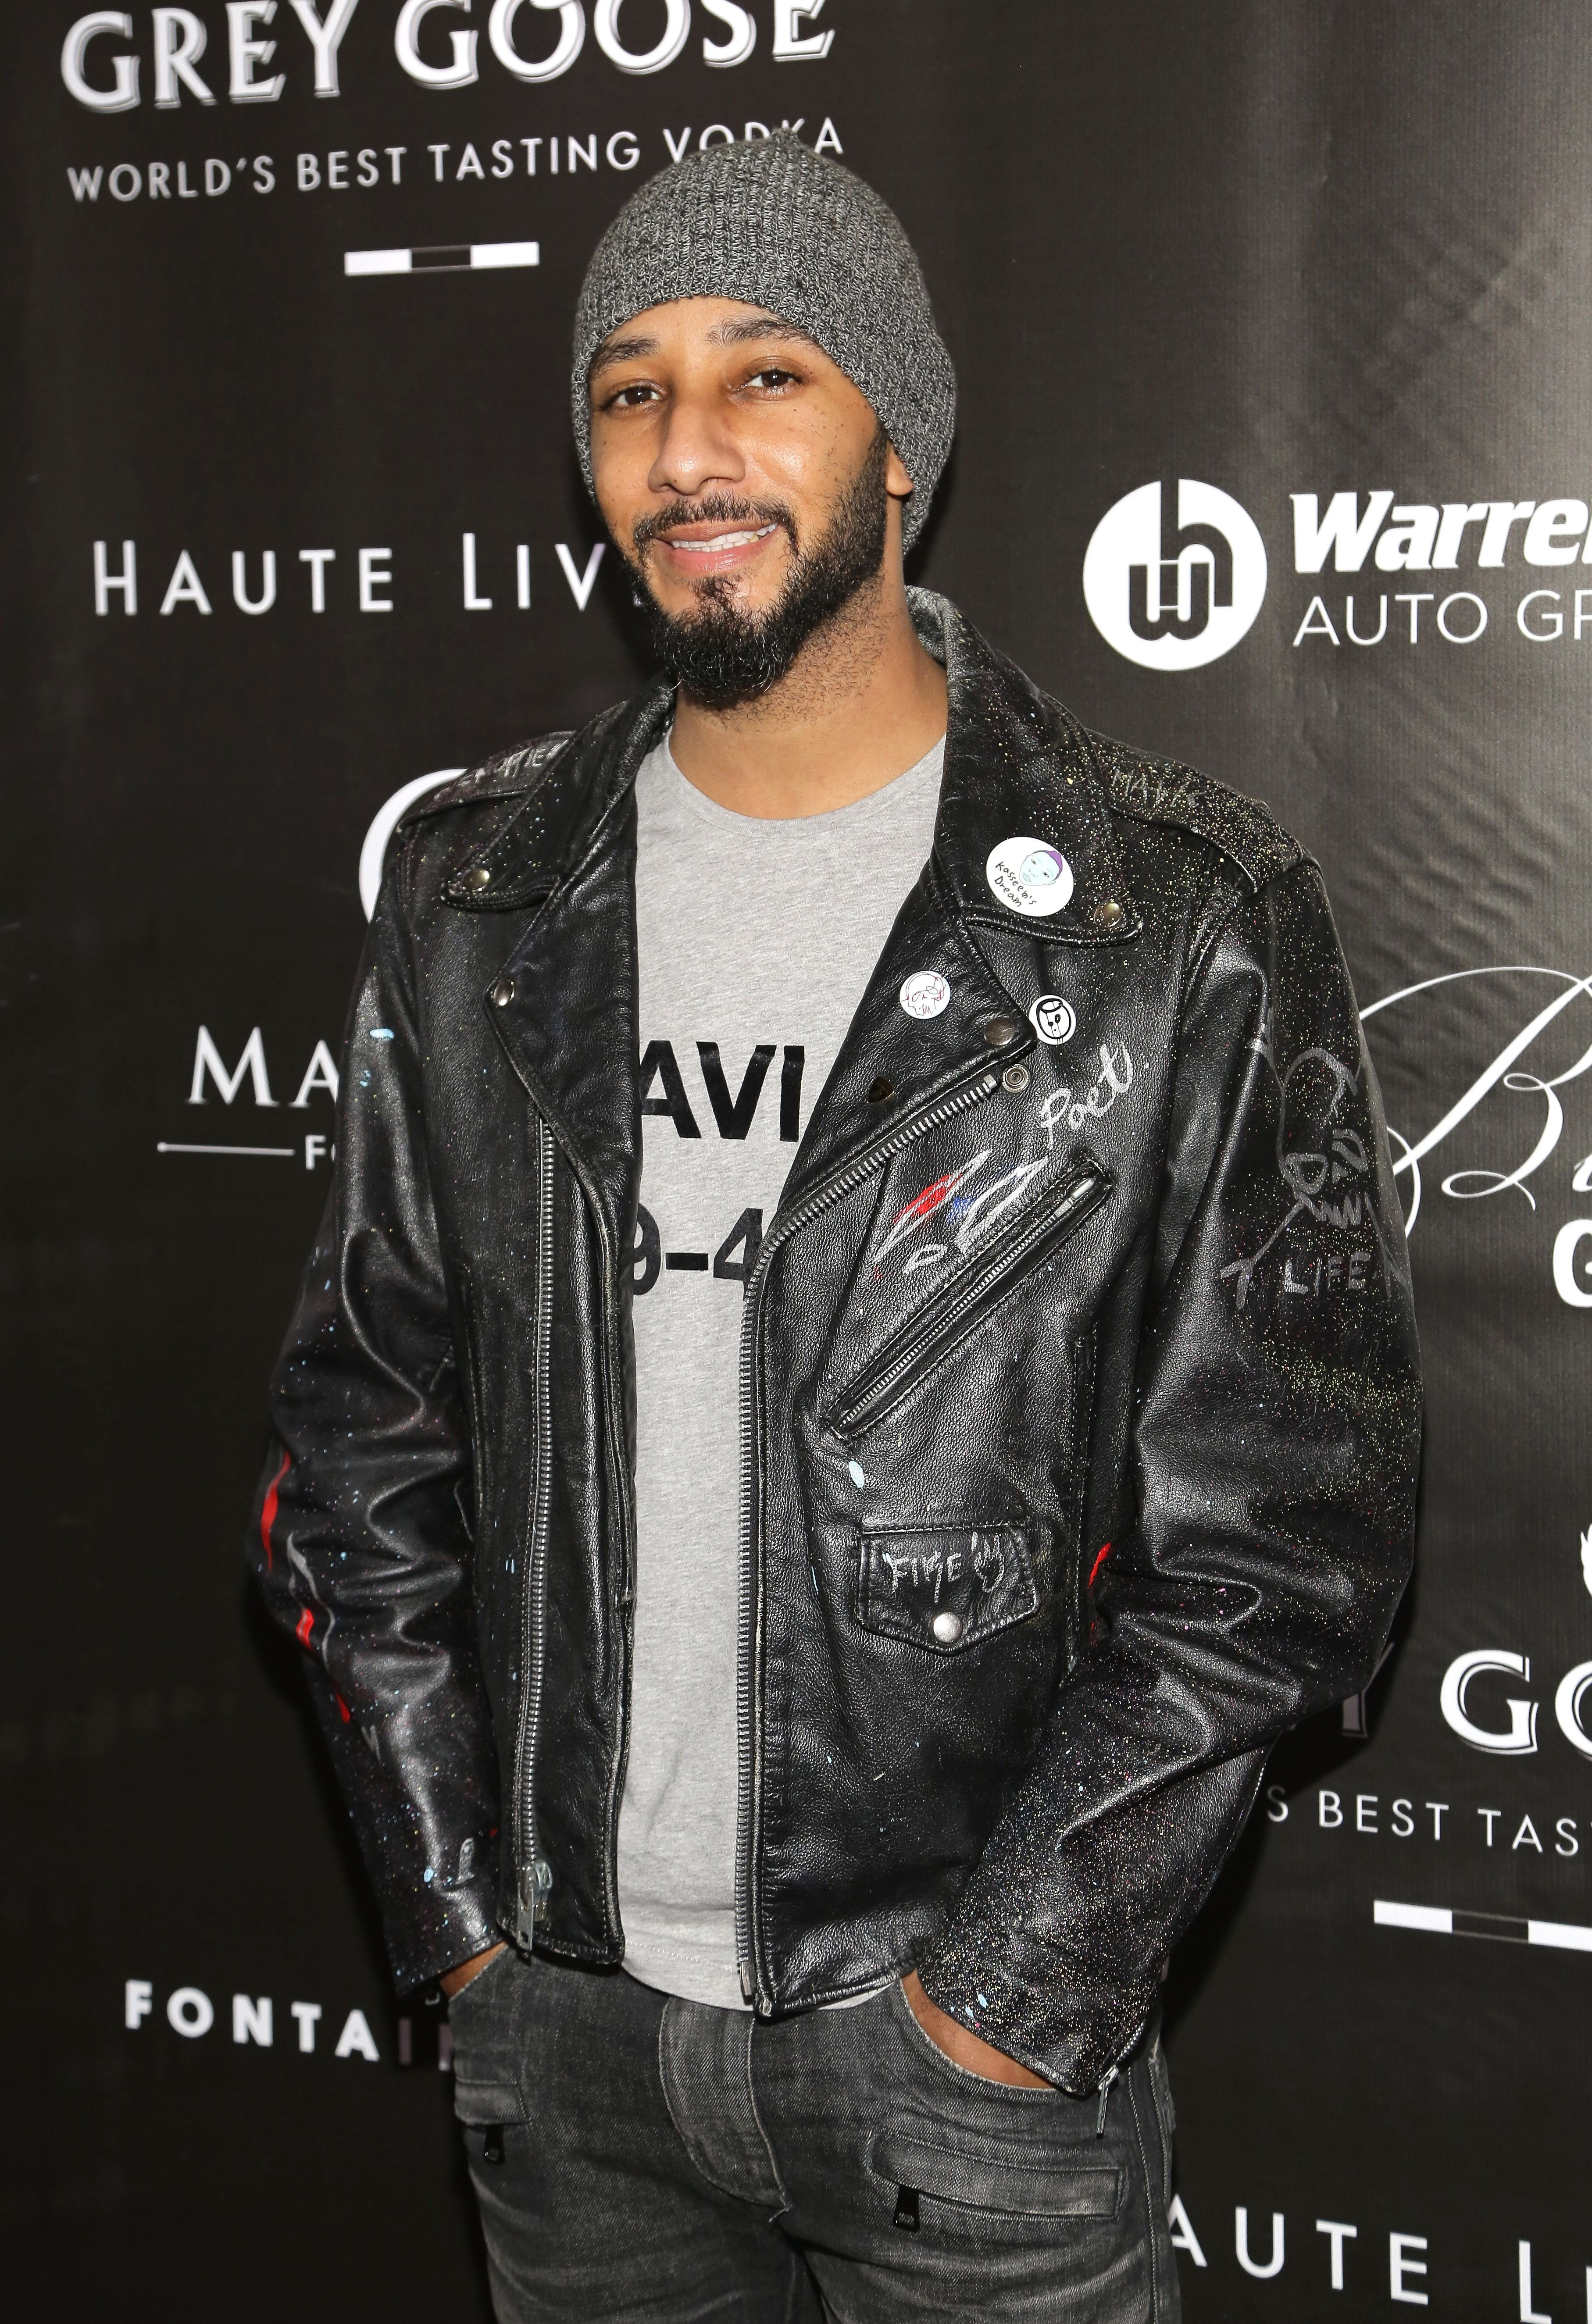 Swizz Beatz during the Blacks' Annual Gala at Fontainebleau Miami Beach on October 25, 2014 in Miami Beach, Florida. | Source: Getty Images